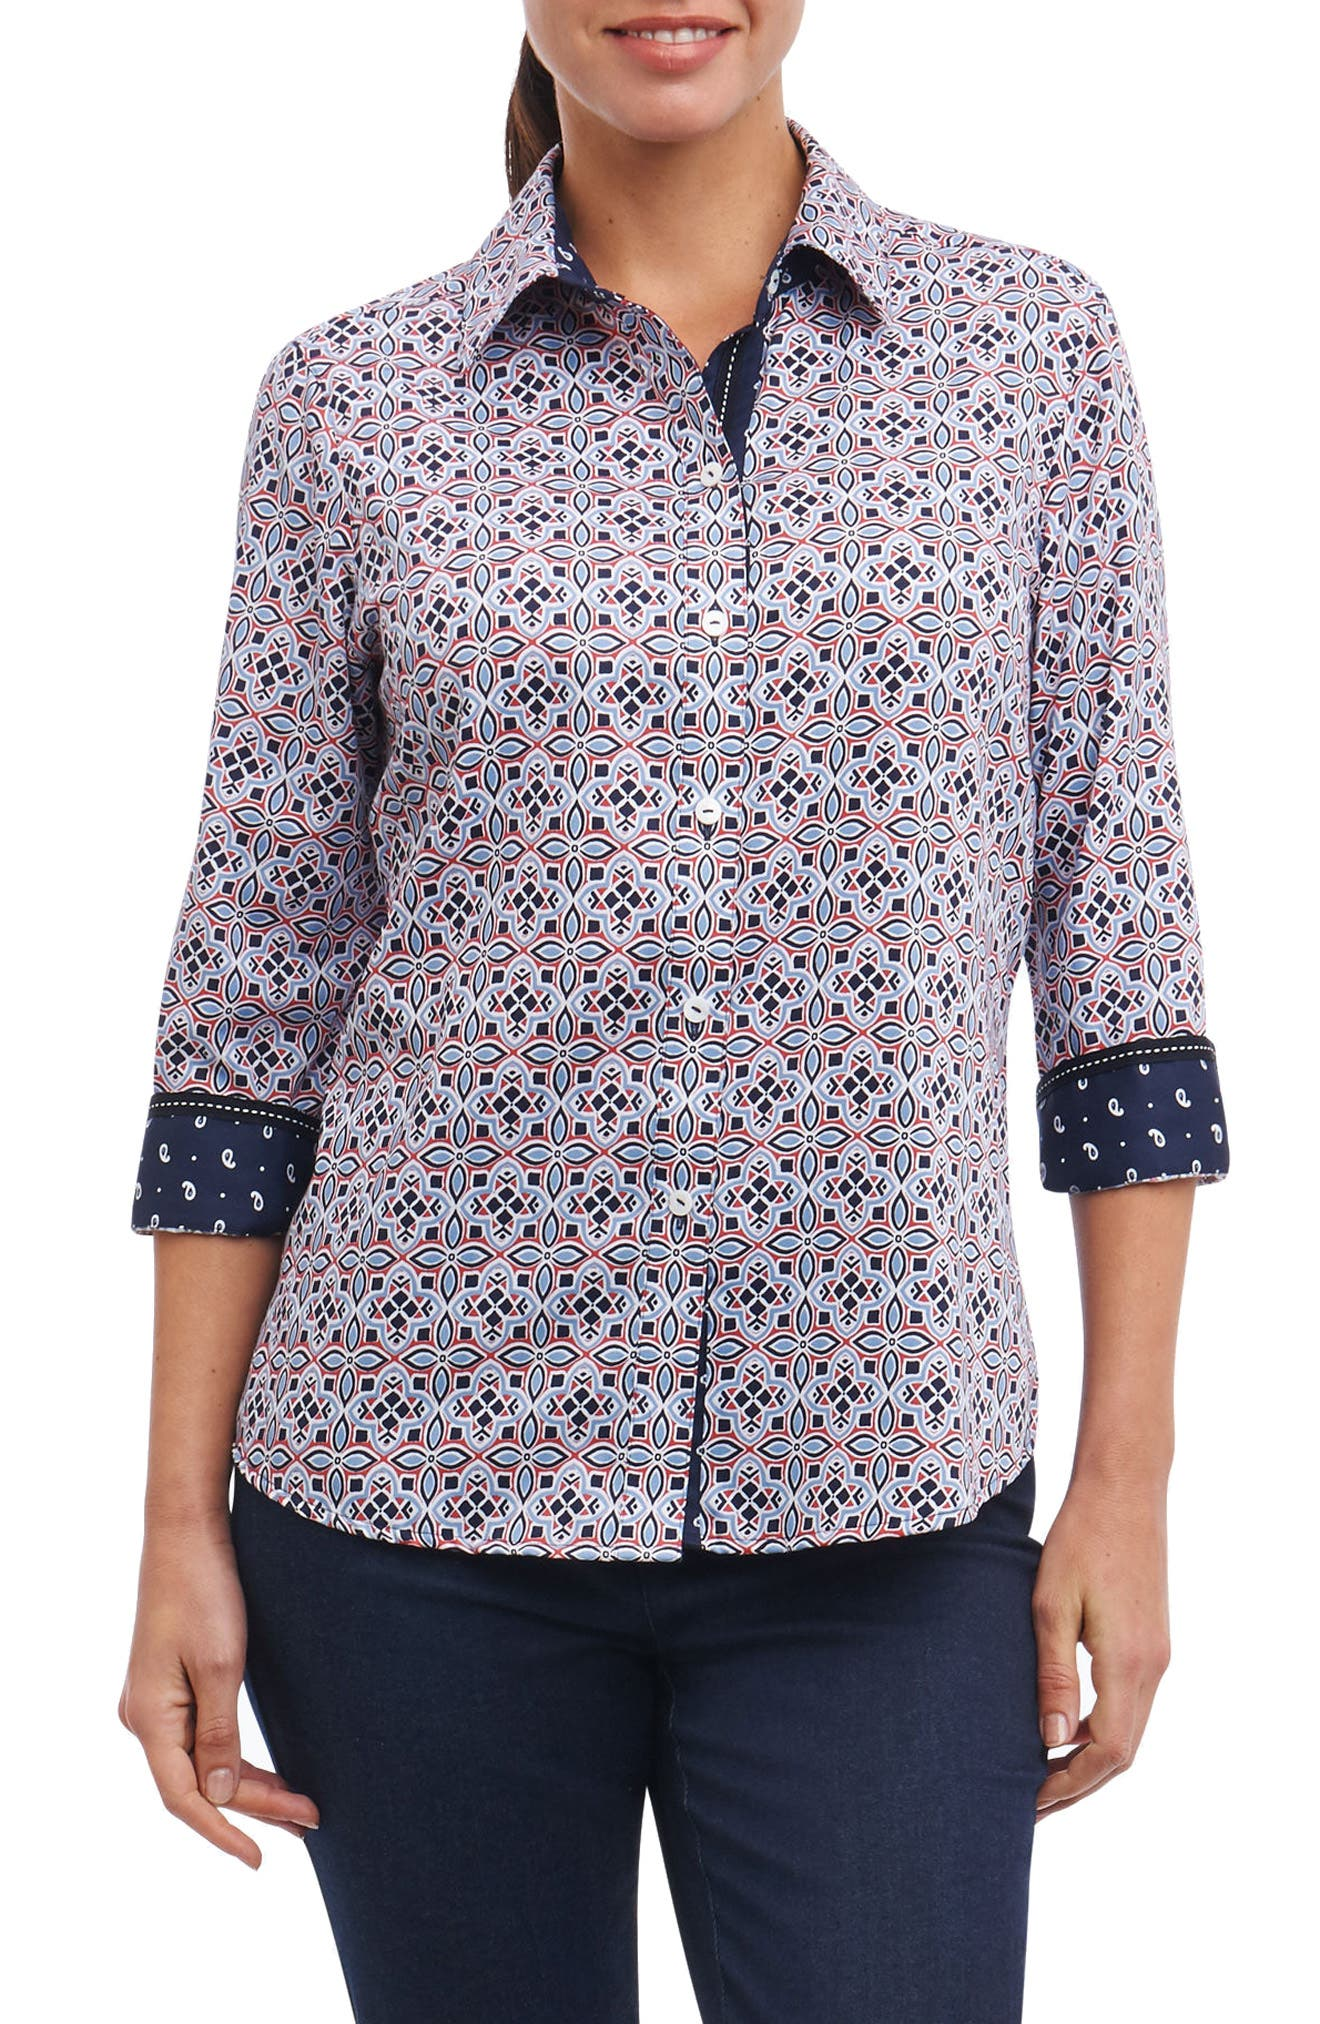 Main Image - Foxcroft Ava Non-Iron Tile Print Cotton Shirt (Regular & Petite)